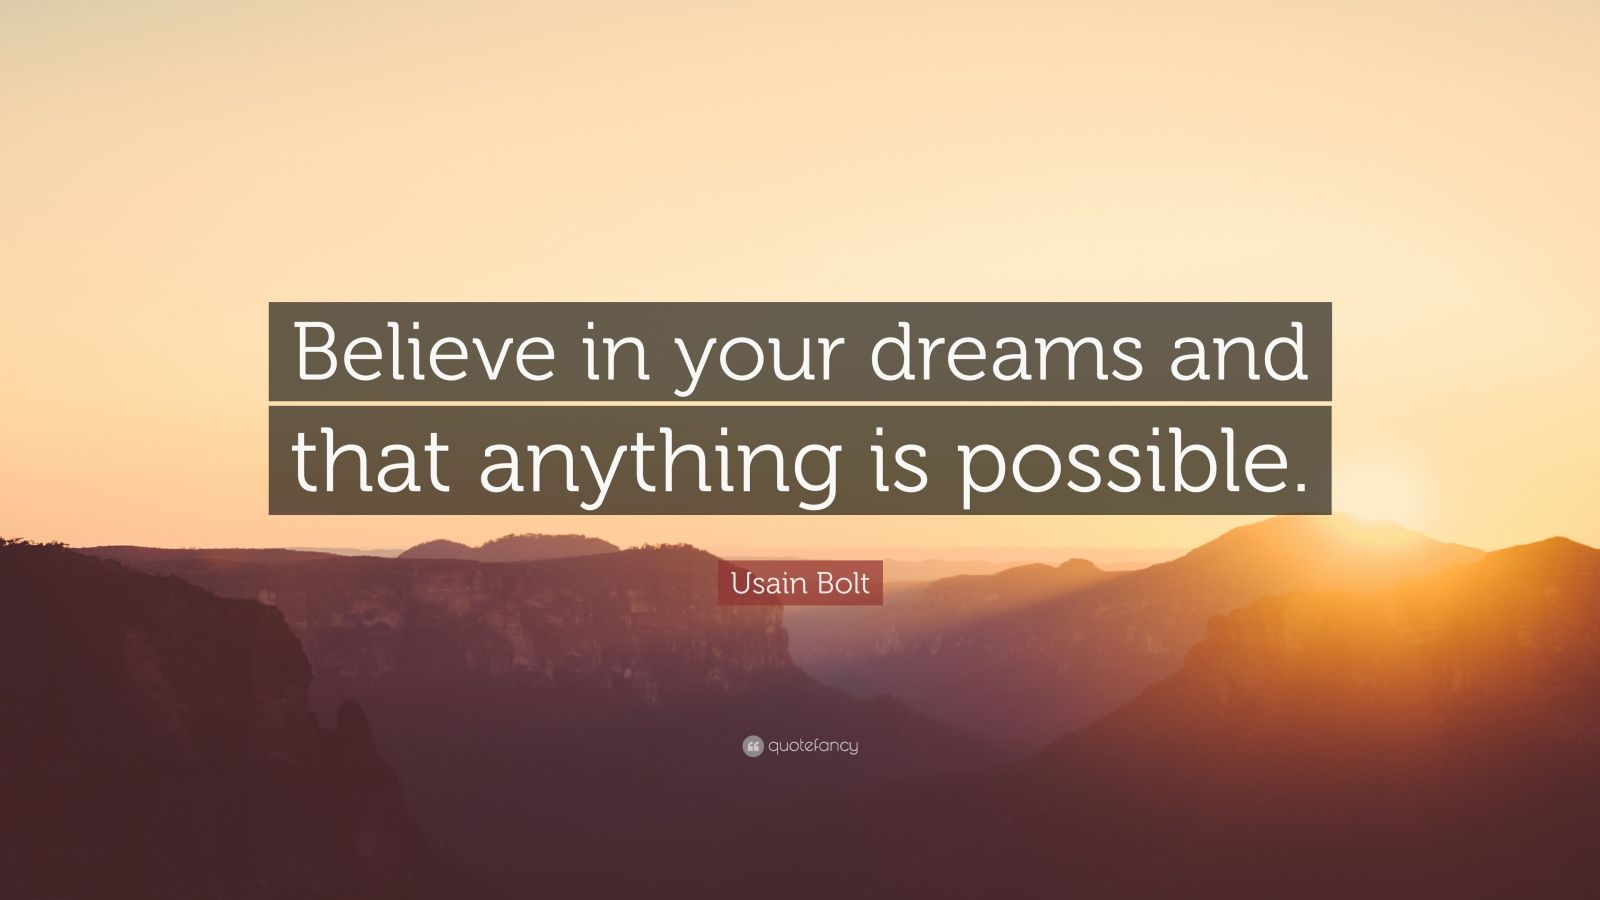 Bolt Quotes Wallpapers Usain Bolt Quote Believe In Your Dreams And That